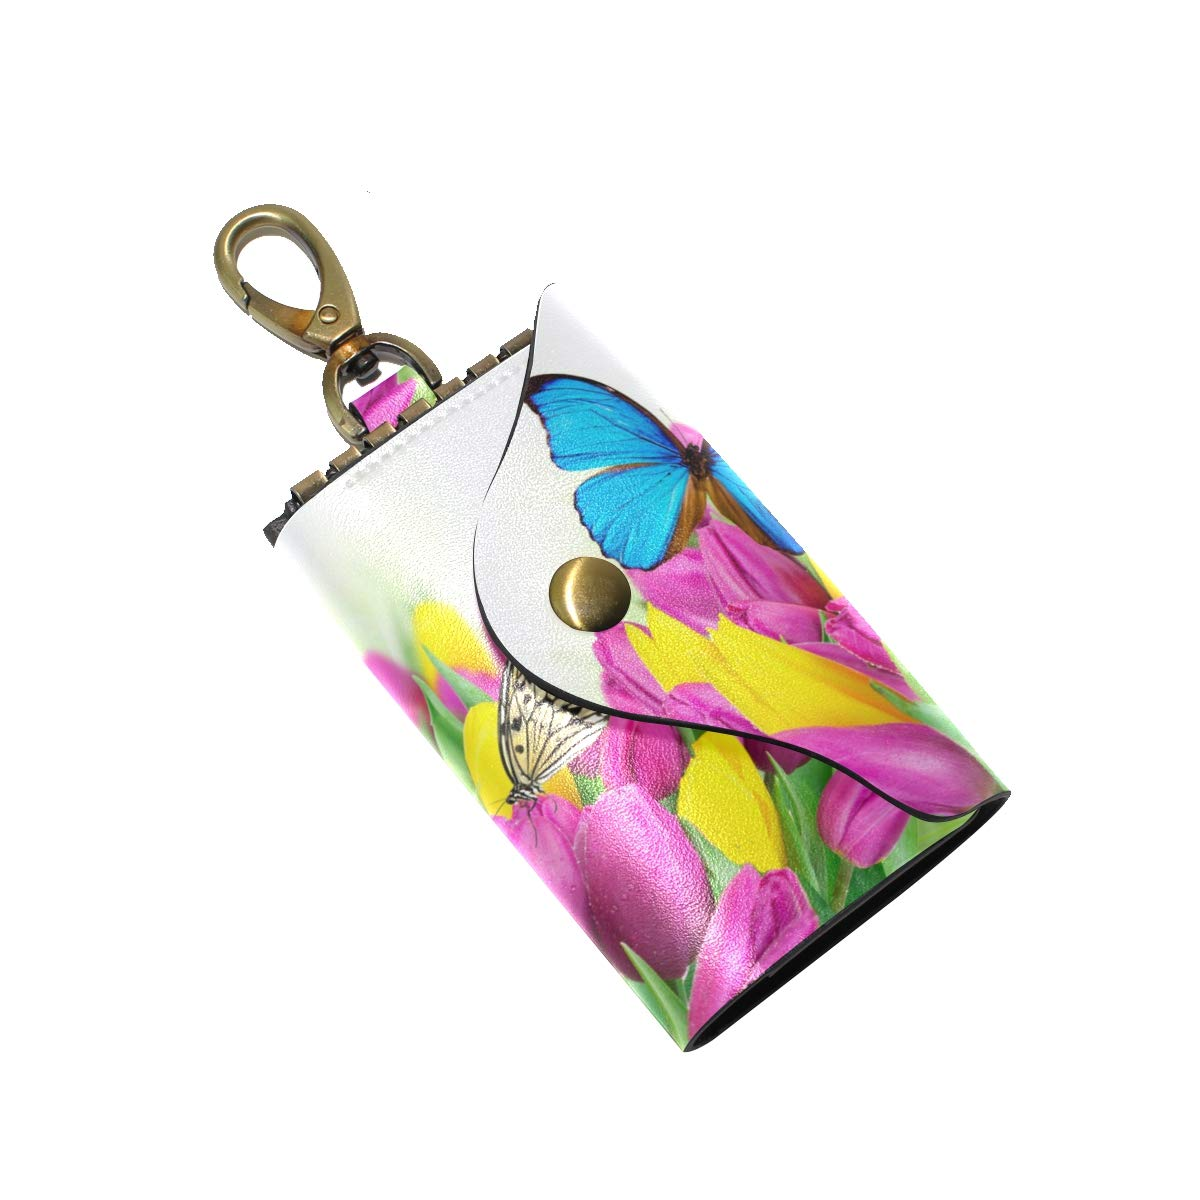 KEAKIA Tulips And Butterflies Leather Key Case Wallets Tri-fold Key Holder Keychains with 6 Hooks 2 Slot Snap Closure for Men Women